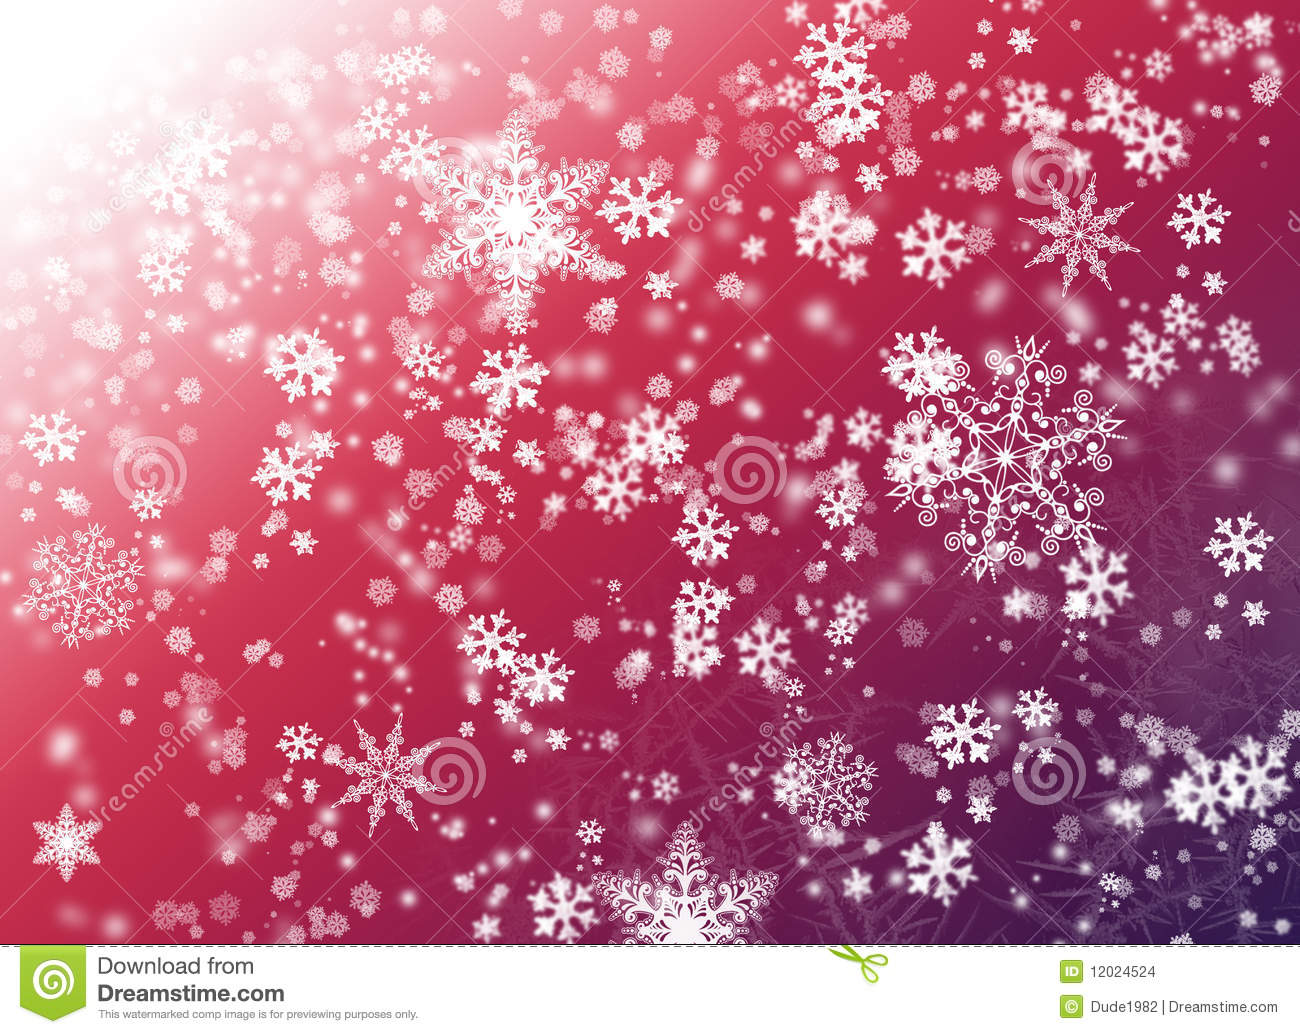 Free Christmas Falling Snow Wallpaper Pink Background With Snowflake Stock Illustration Image